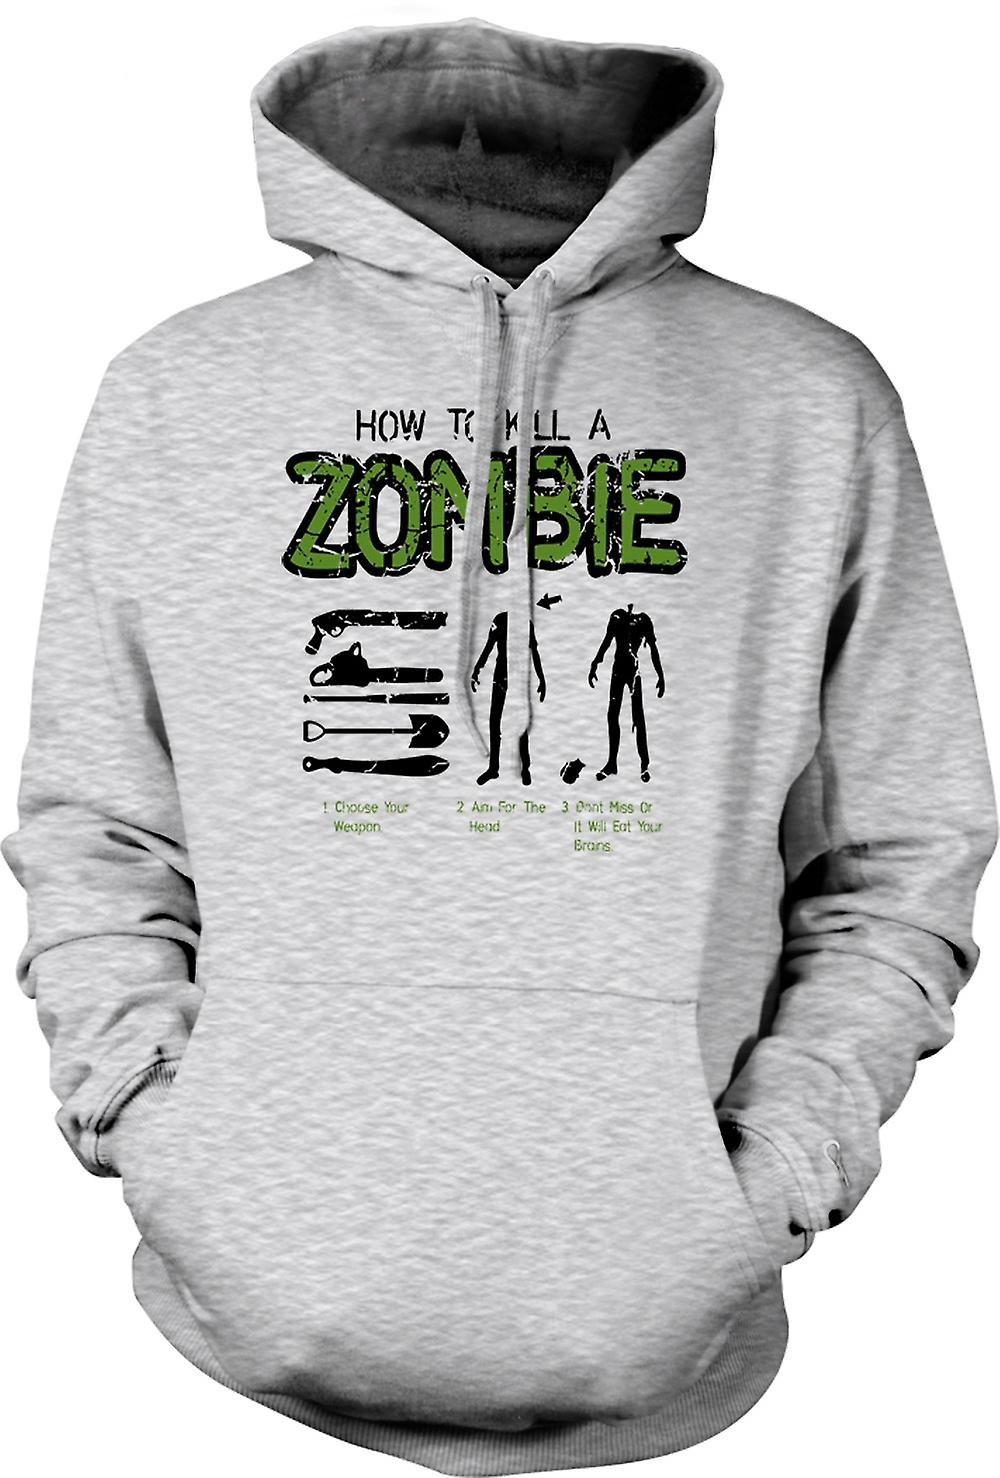 Mens Hoodie - How To Kill A Zombie - Funny